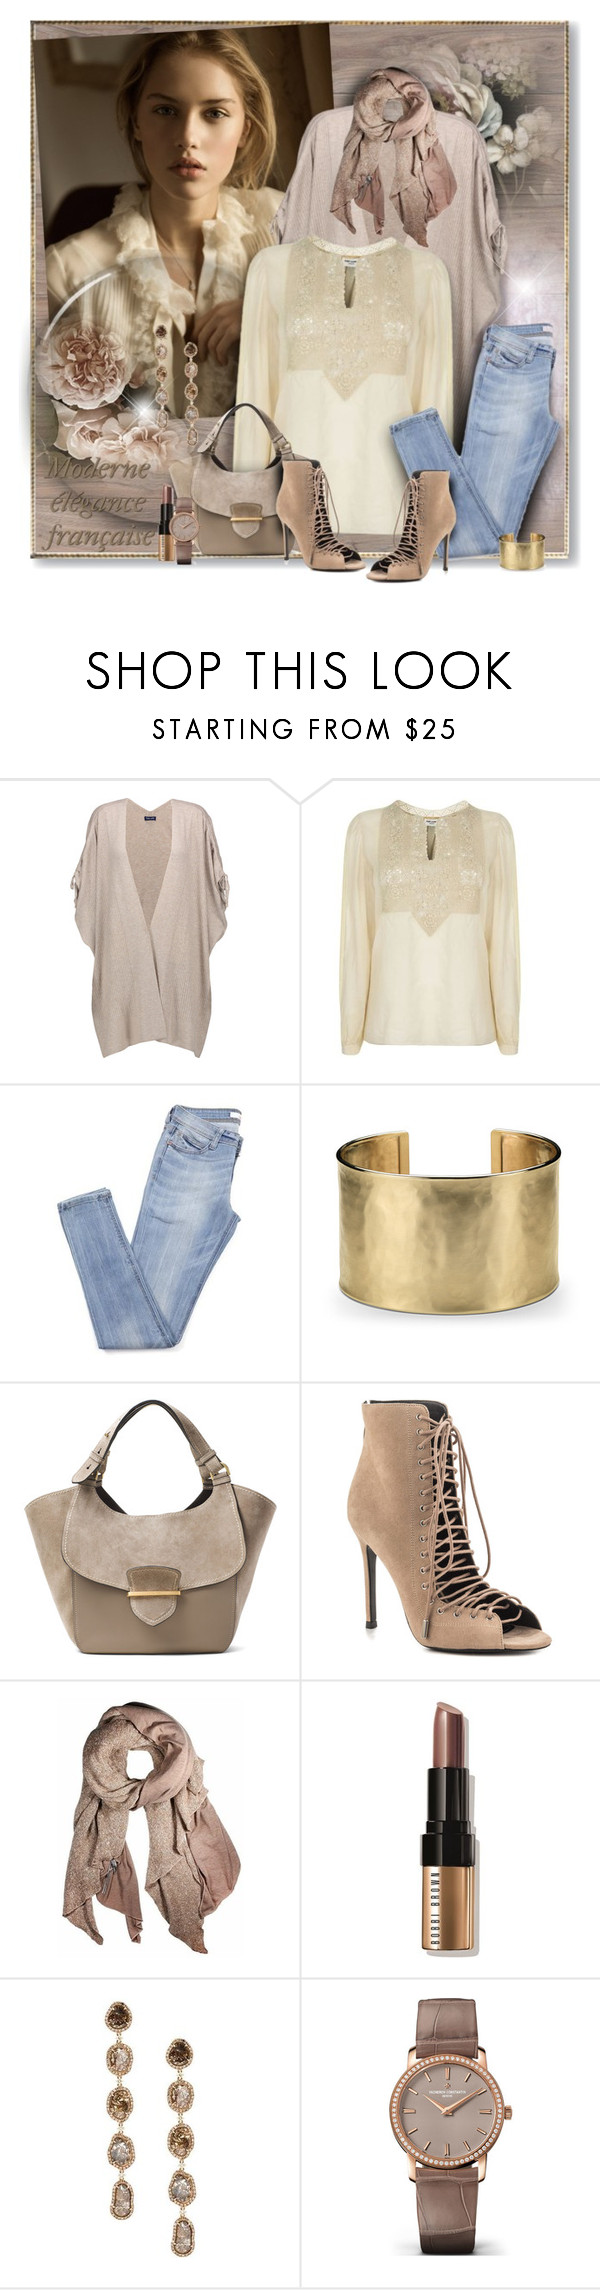 """""""Creme and taupe"""" by perla57 ❤ liked on Polyvore featuring Splendid, Yves Saint Laurent, Blue Nile, Michael Kors, Kendall + Kylie, donni charm, Bobbi Brown Cosmetics, Saqqara and Vacheron Constantin"""